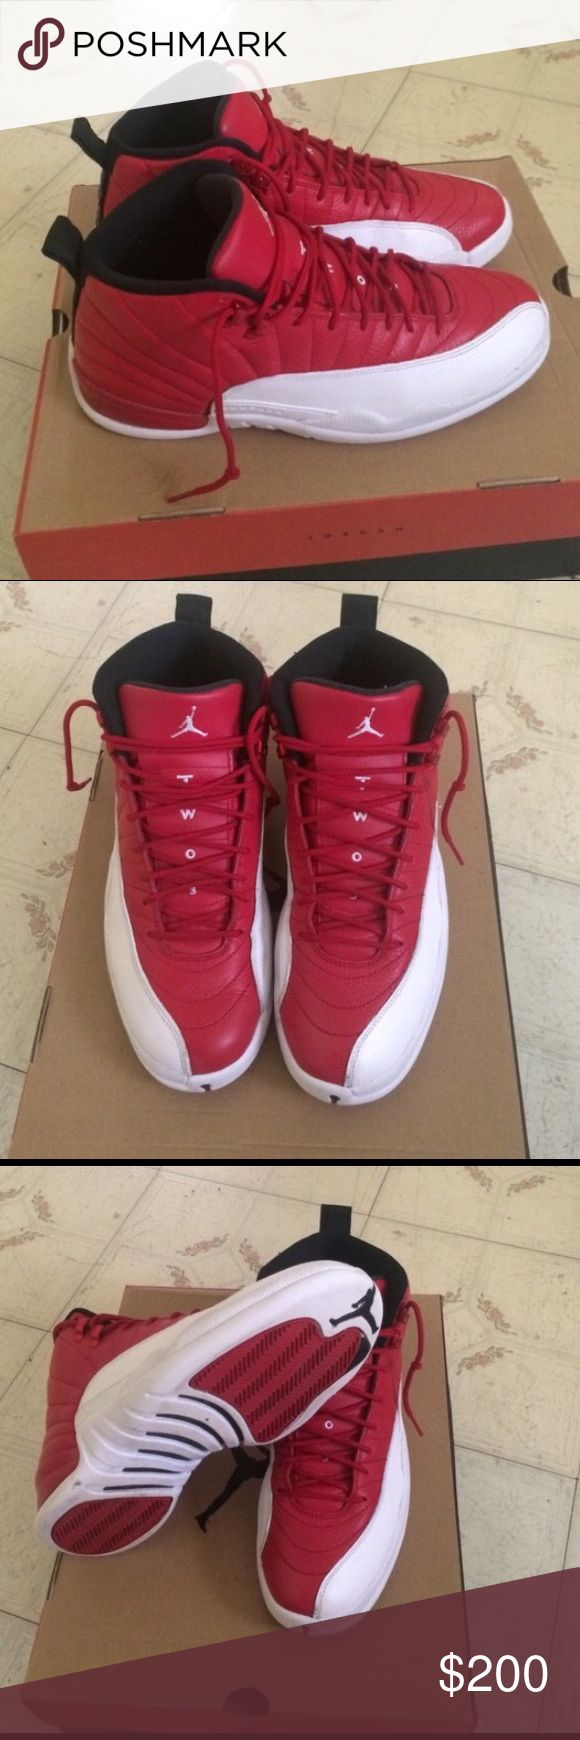 Retro Jordan Gym Red 12s Brand new Retro Jordan's Gym Reds 12s. Contact me at (908) 484-6741 Jordan Shoes Sneakers